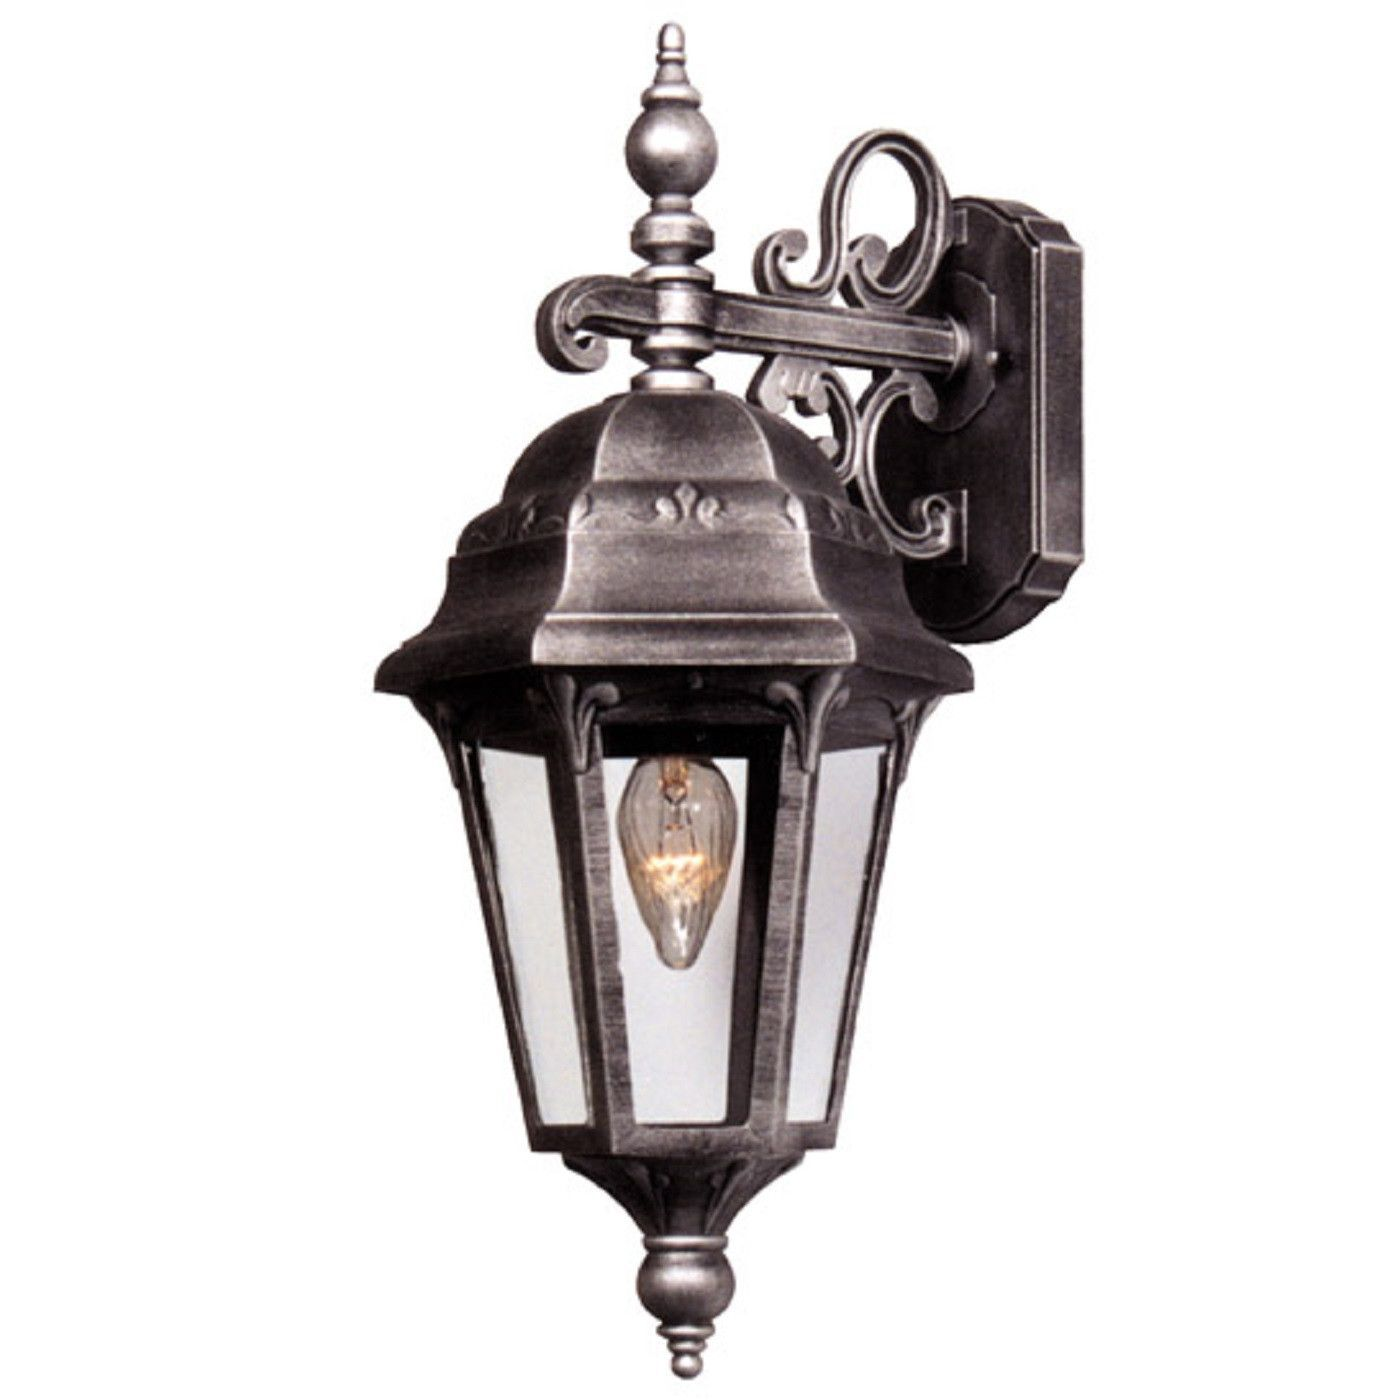 Best Of top Mounted Outdoor Light